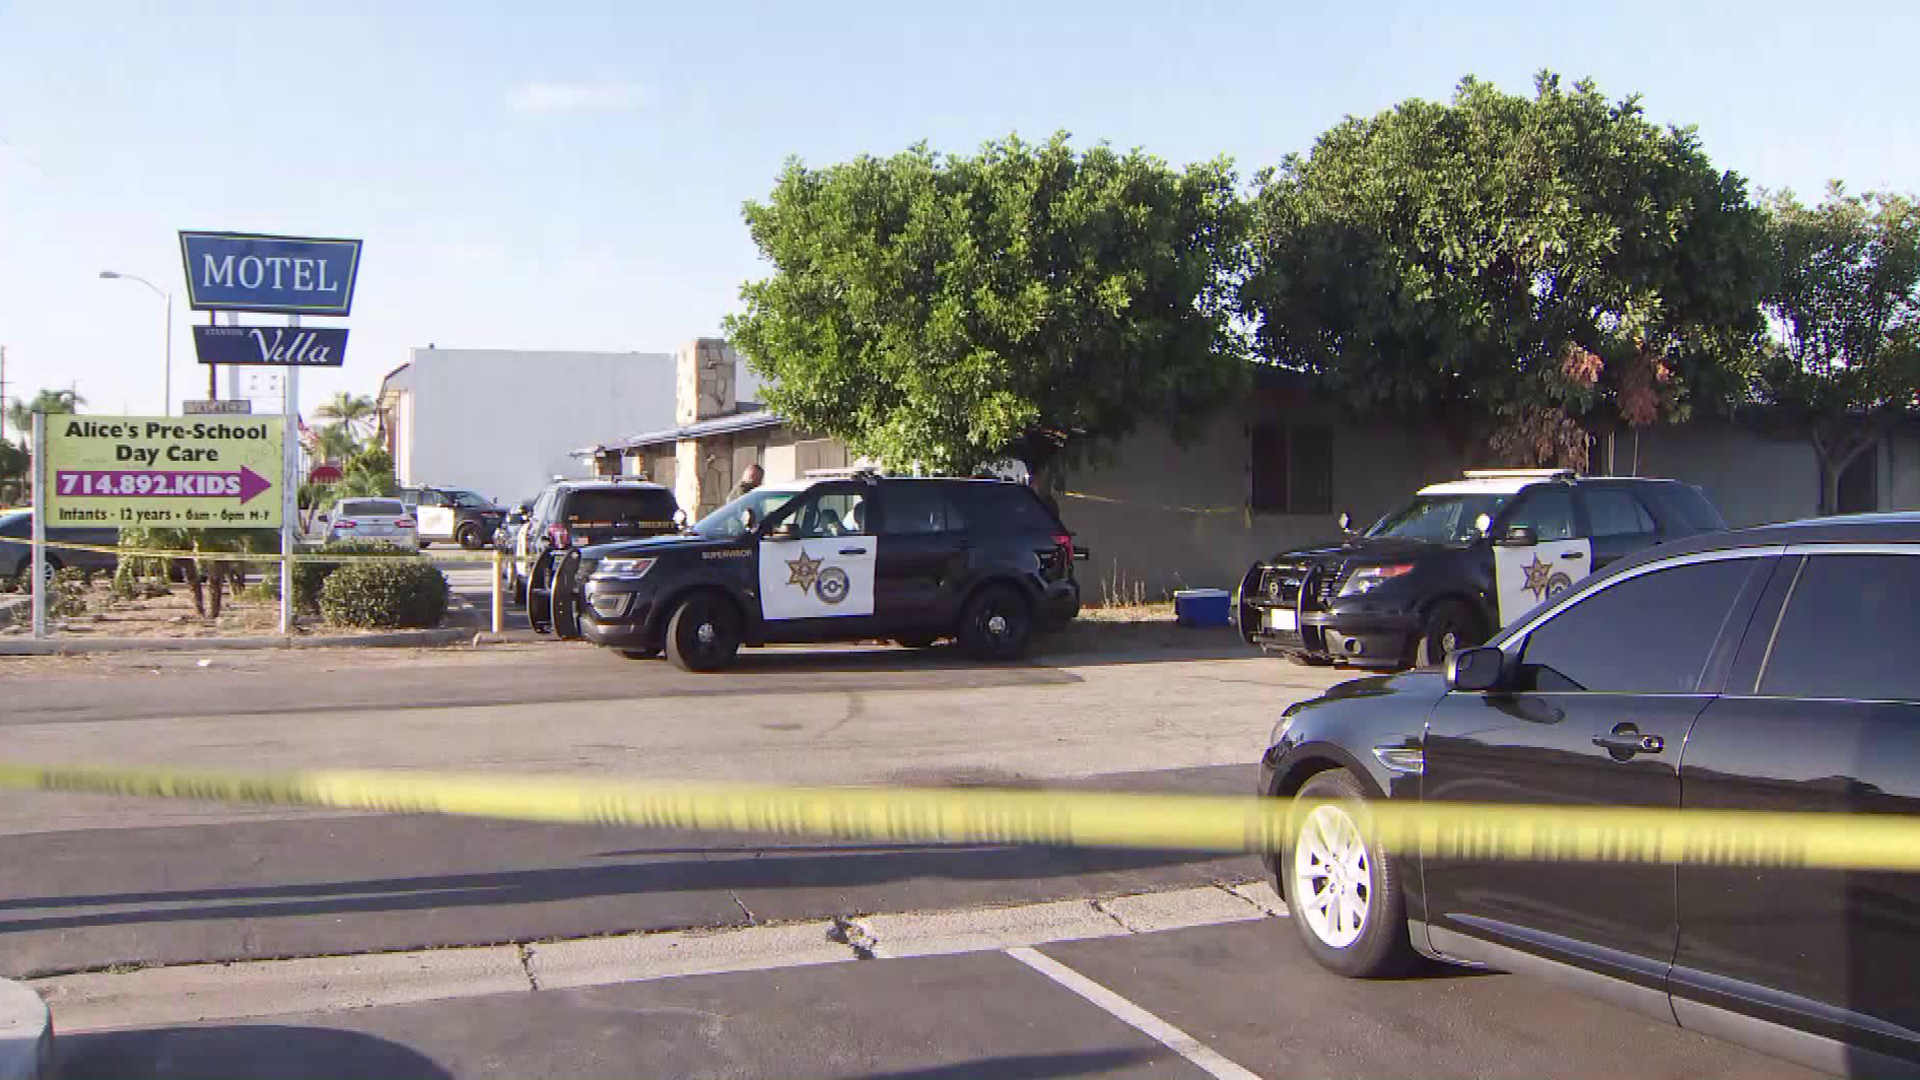 Officials respond to investigate a fatal shooting at a motel in Stanton on Aug. 26, 2019. (Credit: KTLA)